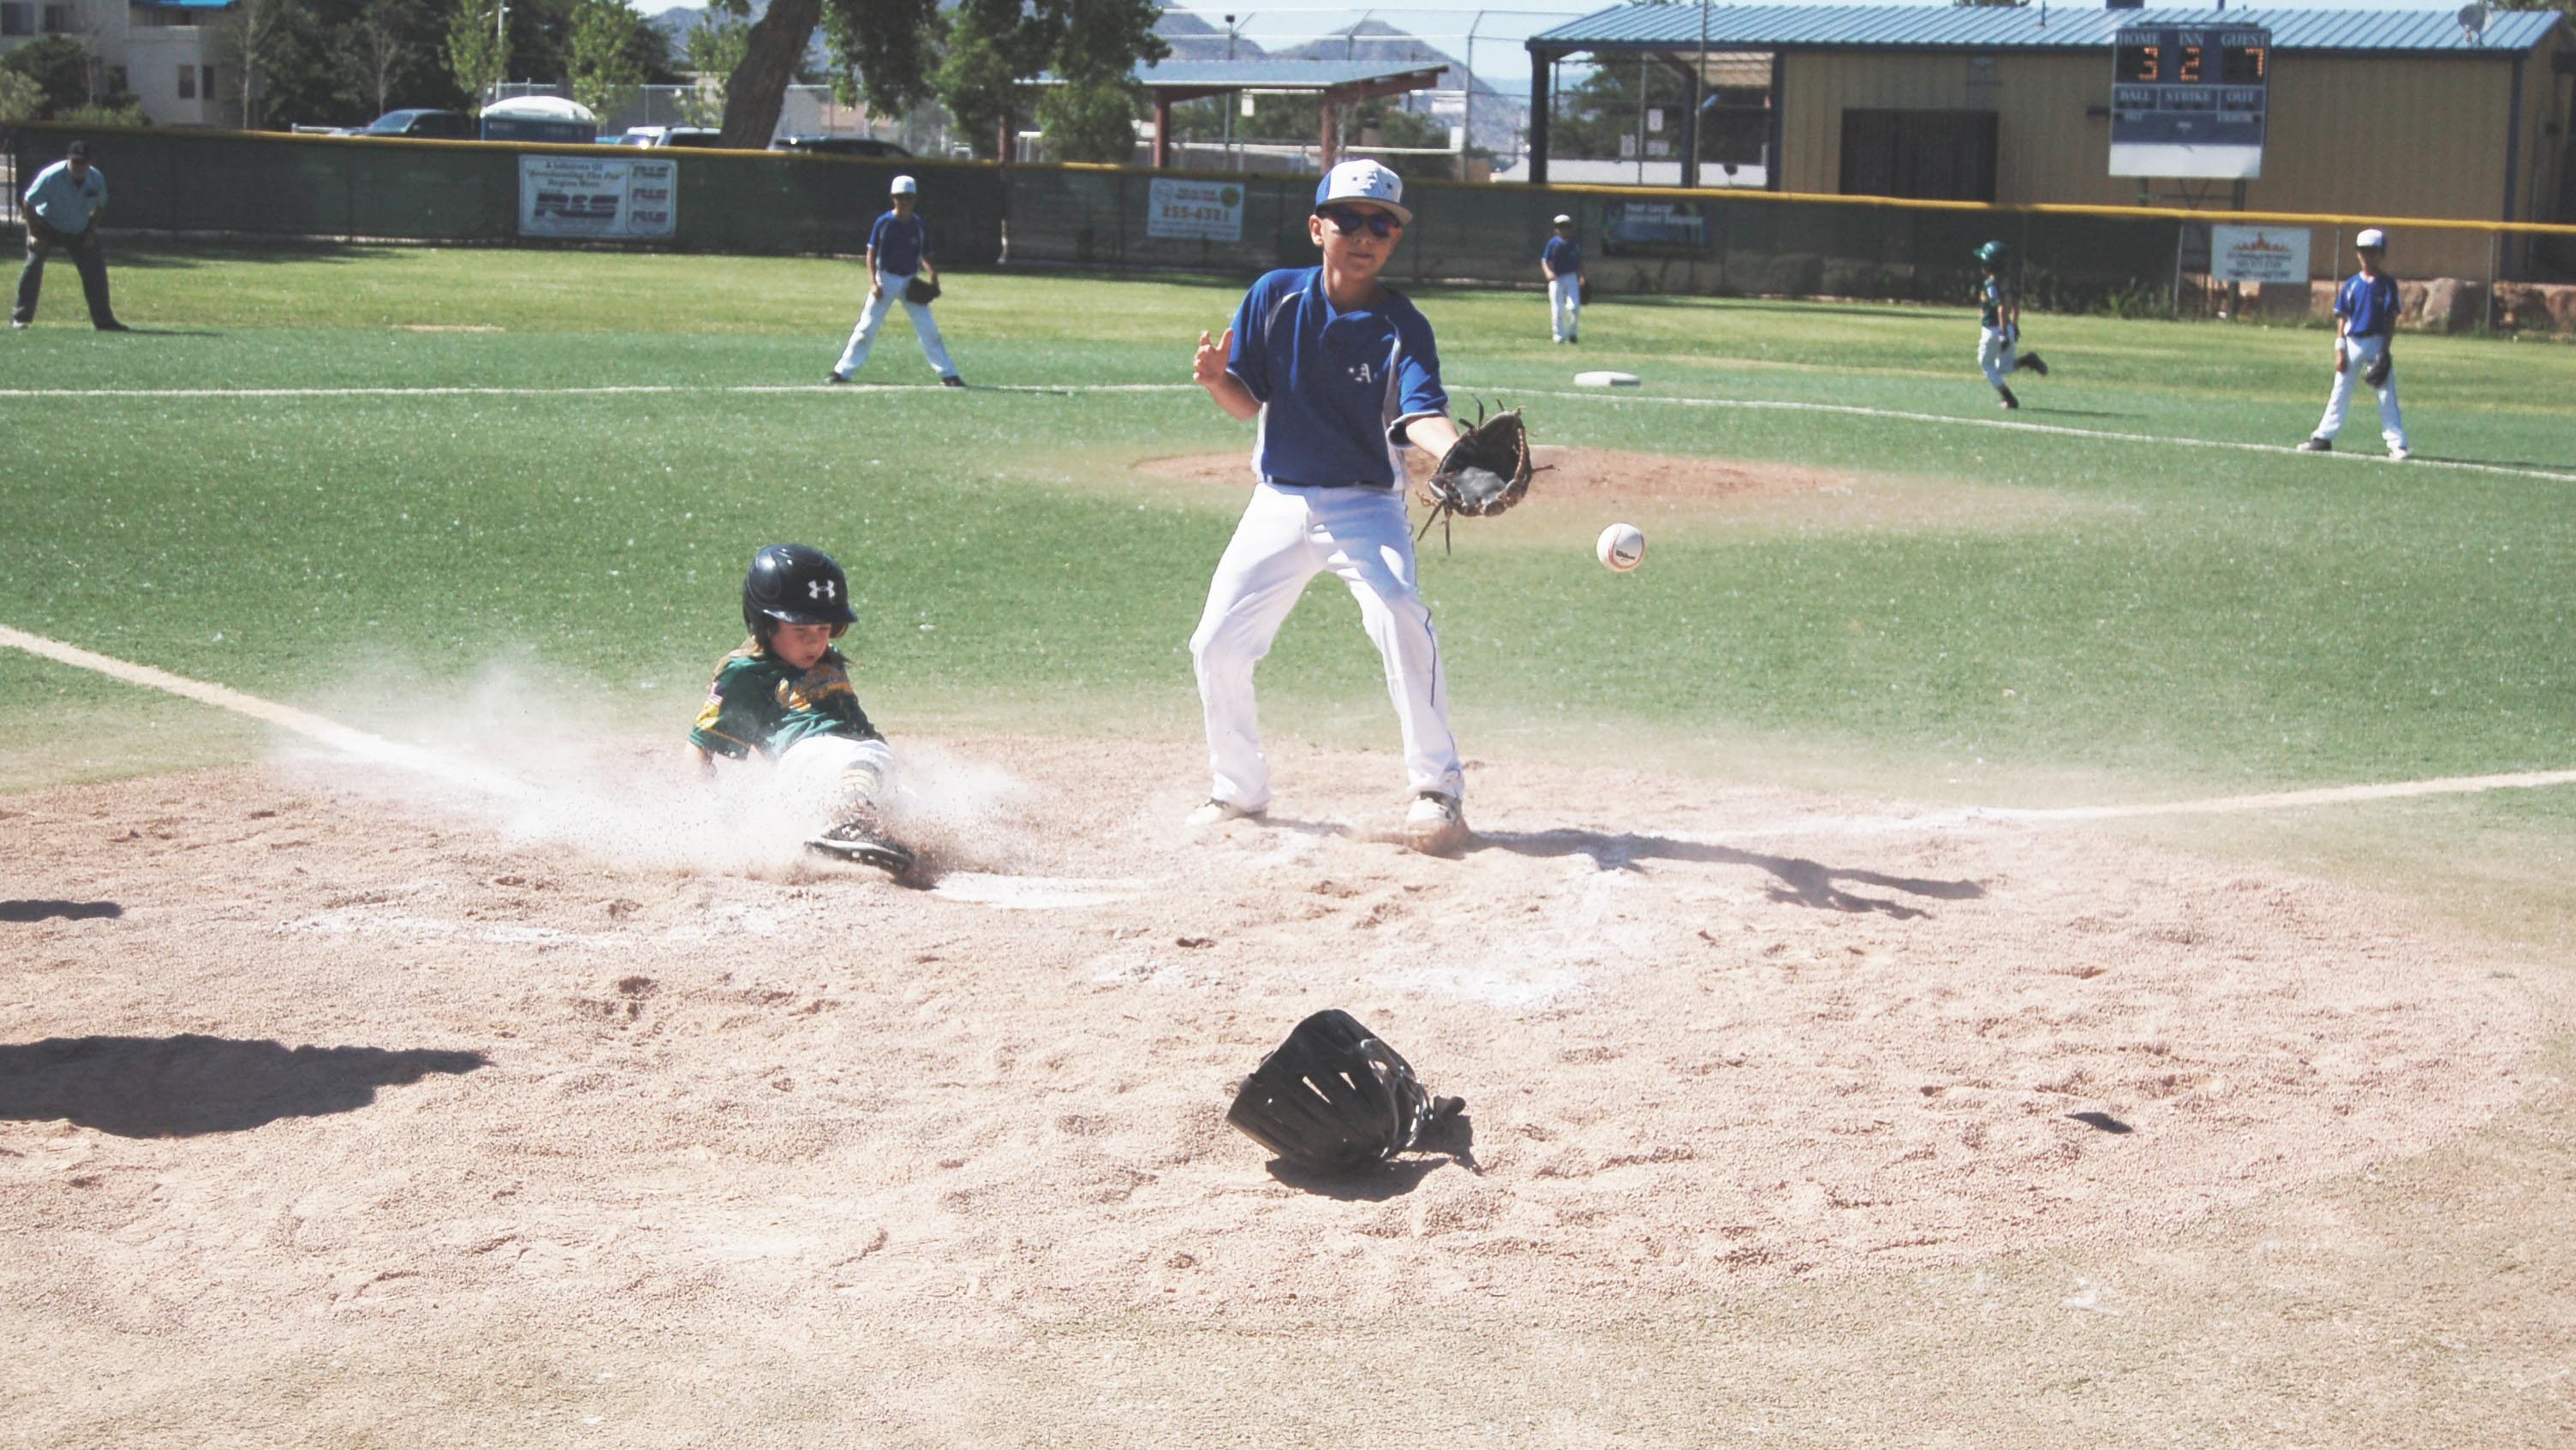 East Mtn. Little League Minors Division team wins first district championship in 25 years